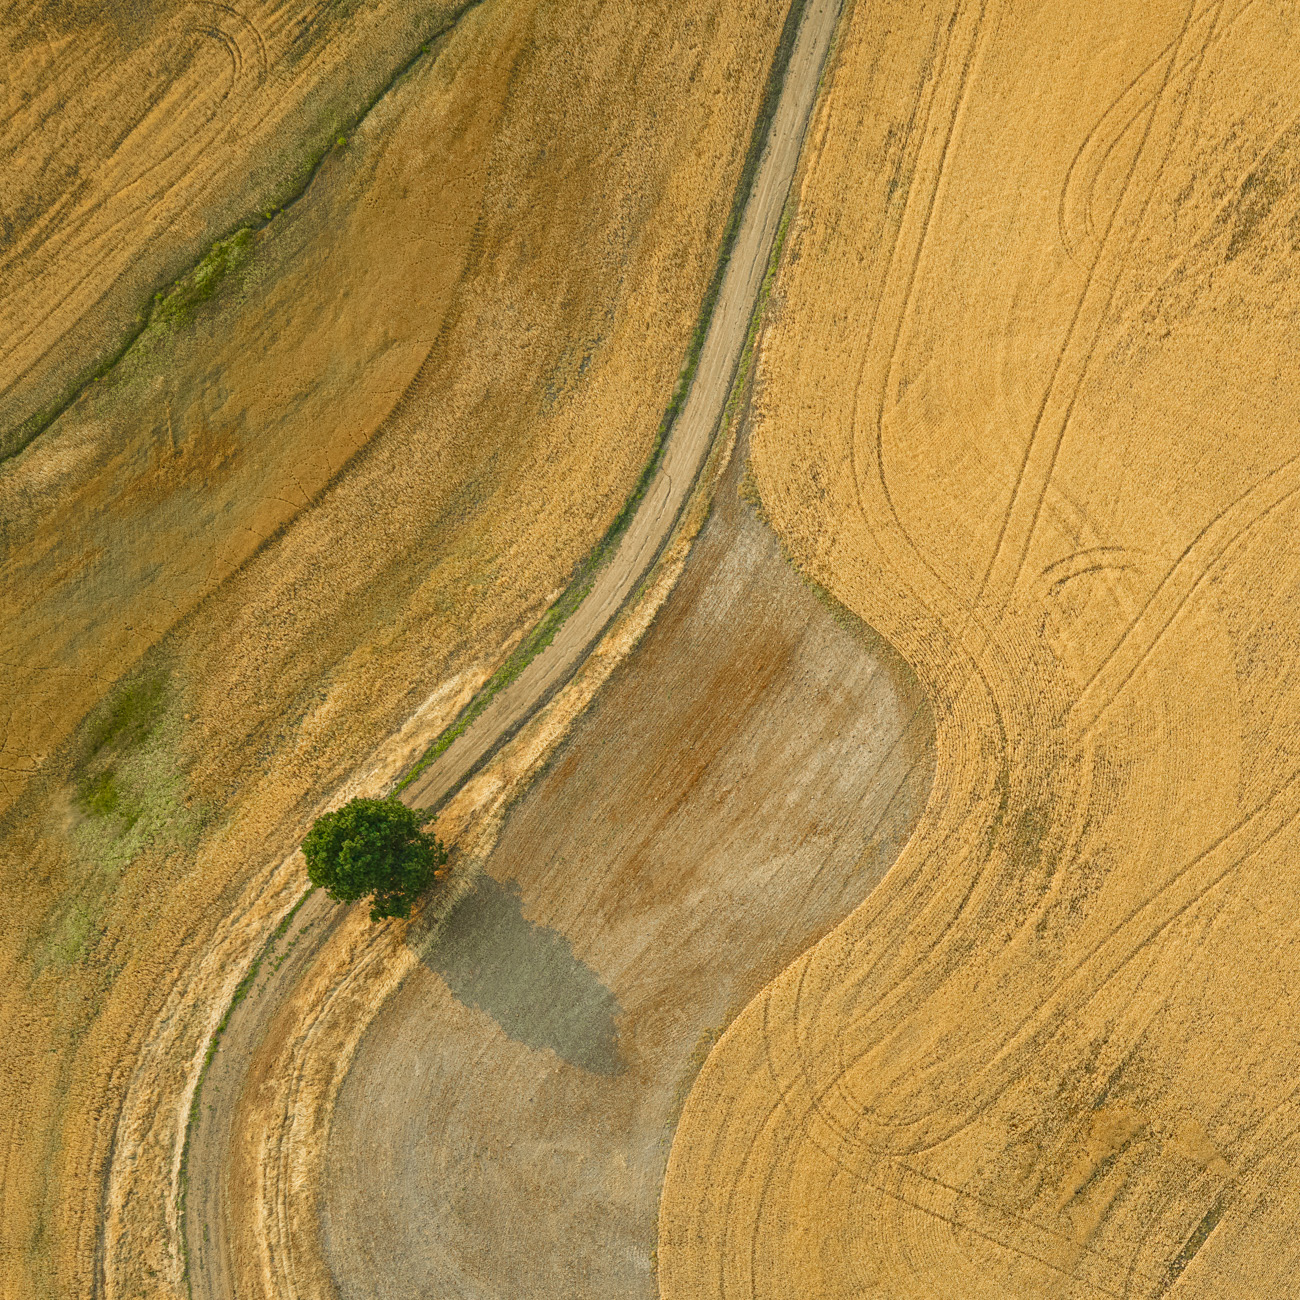 Palouse Tree Aerial